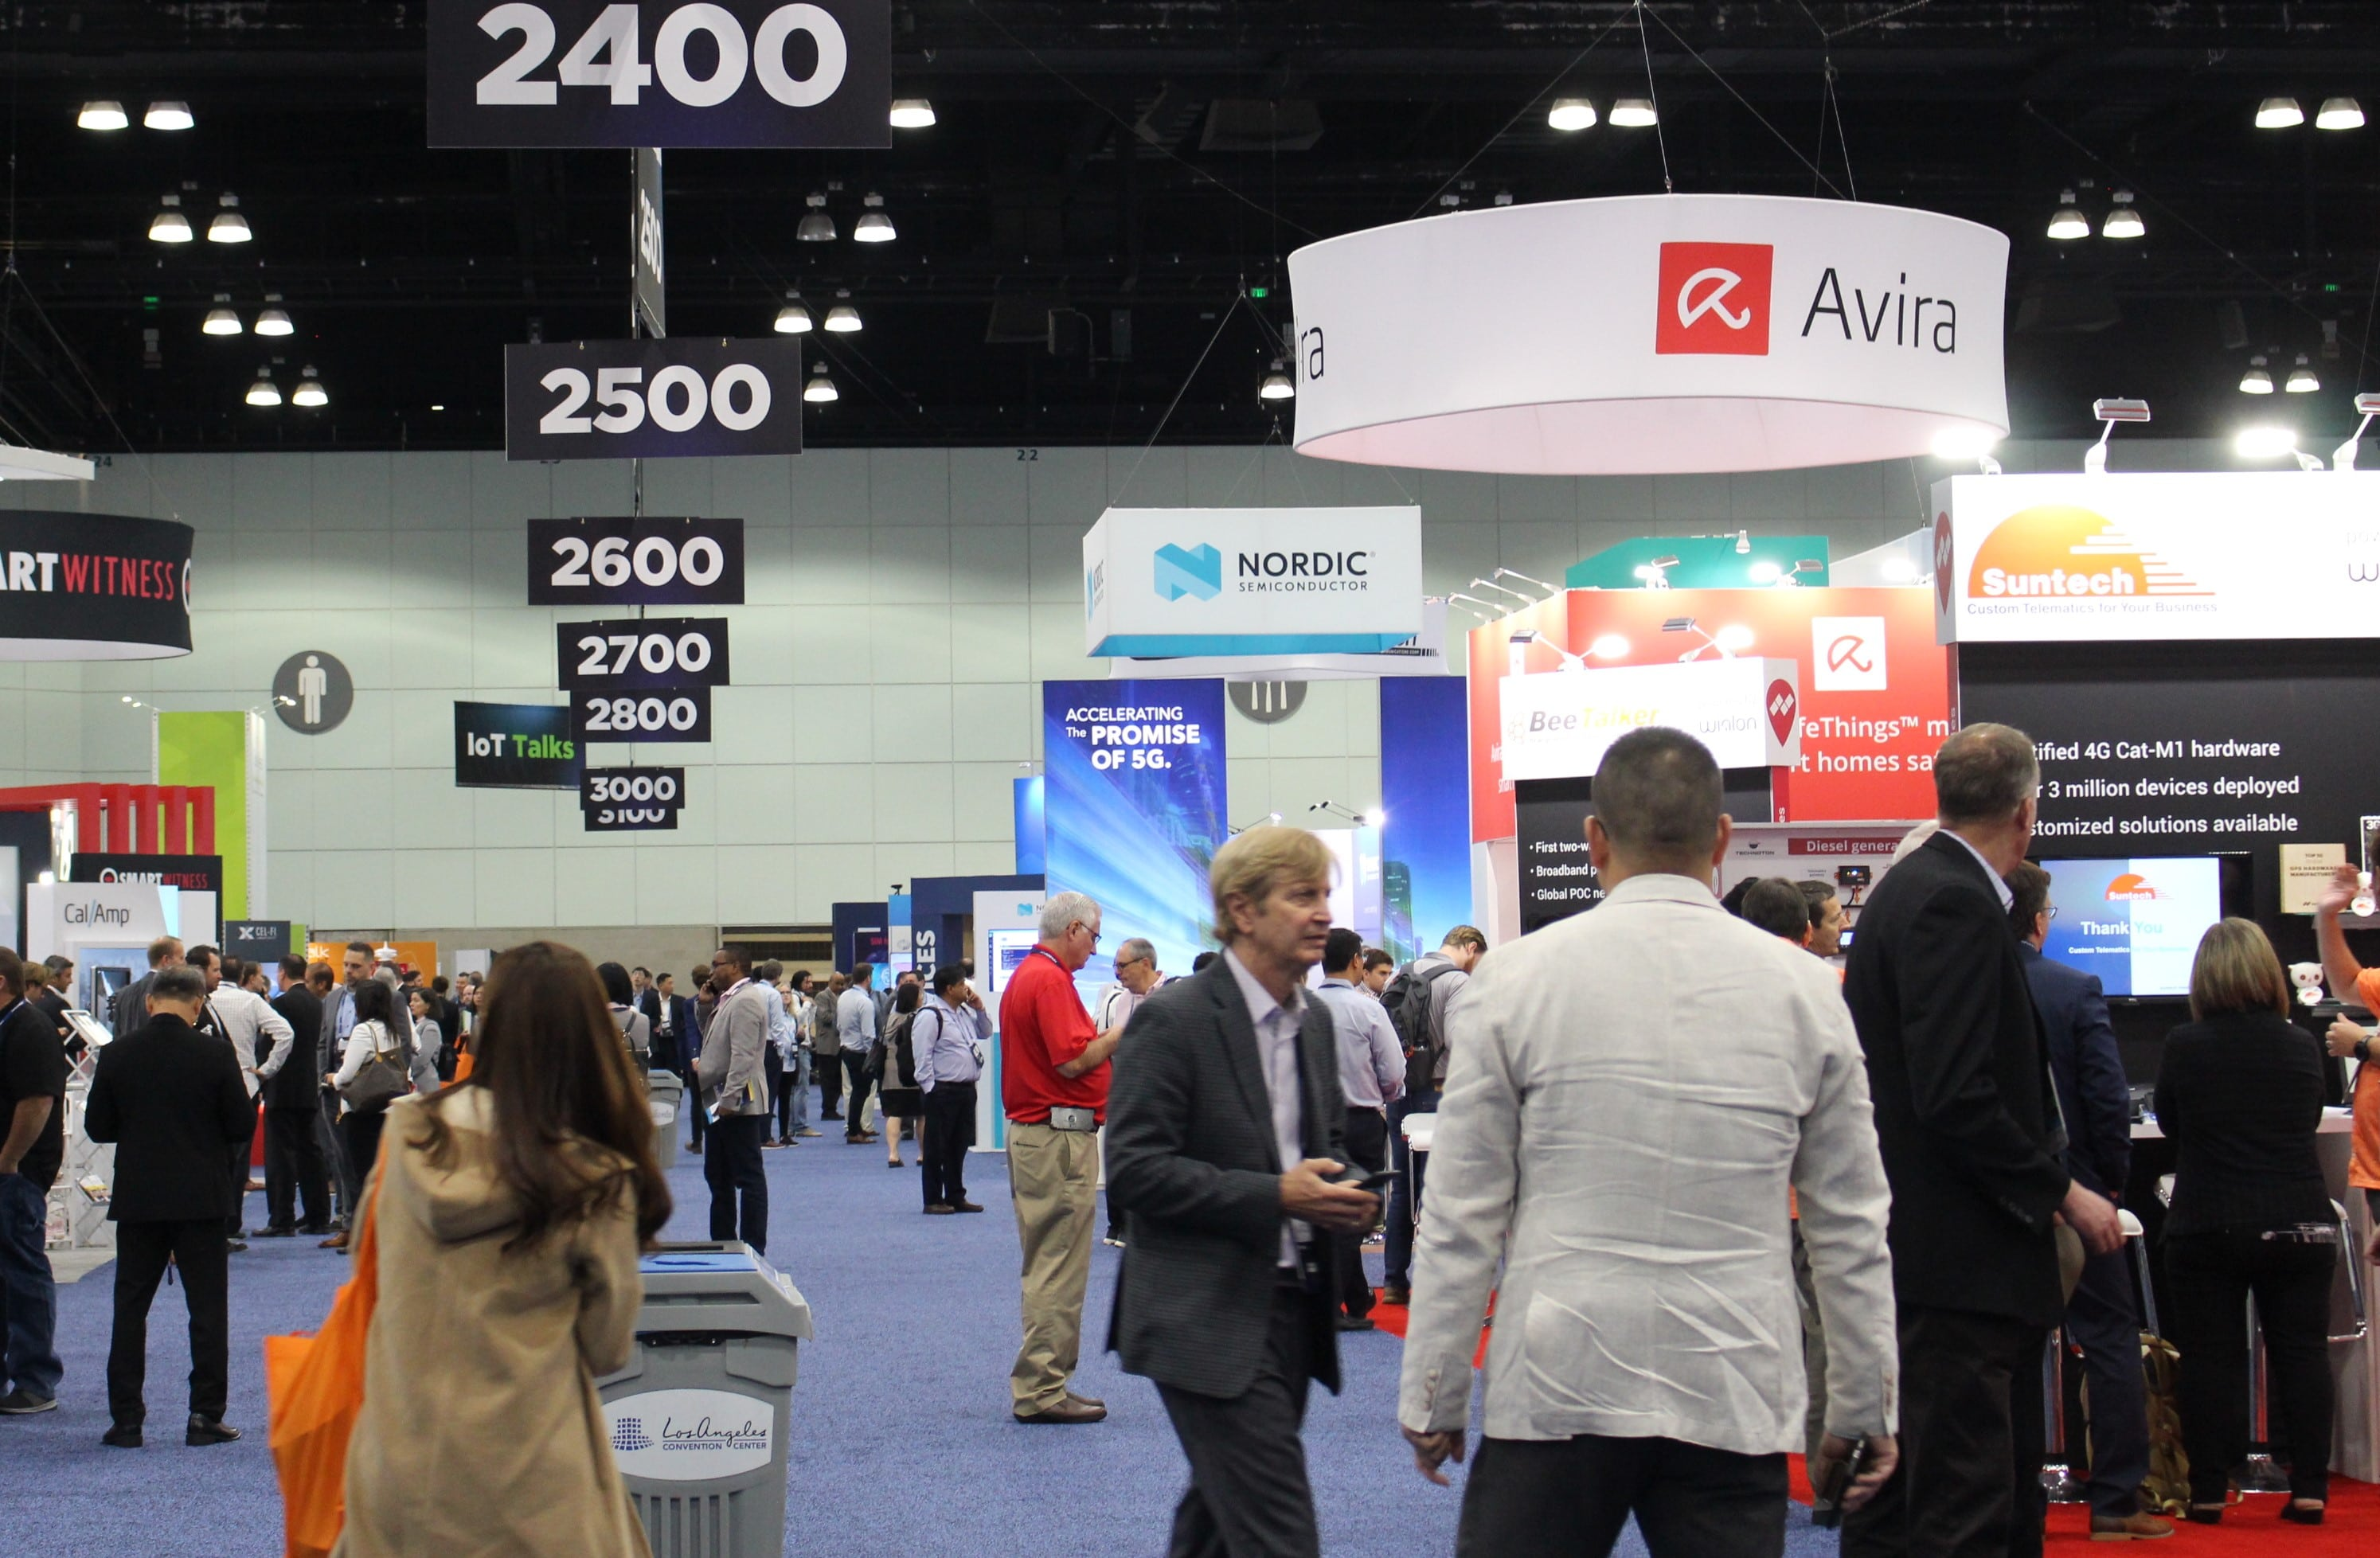 Report from the 2019 Mobile World Congress in Los Angeles